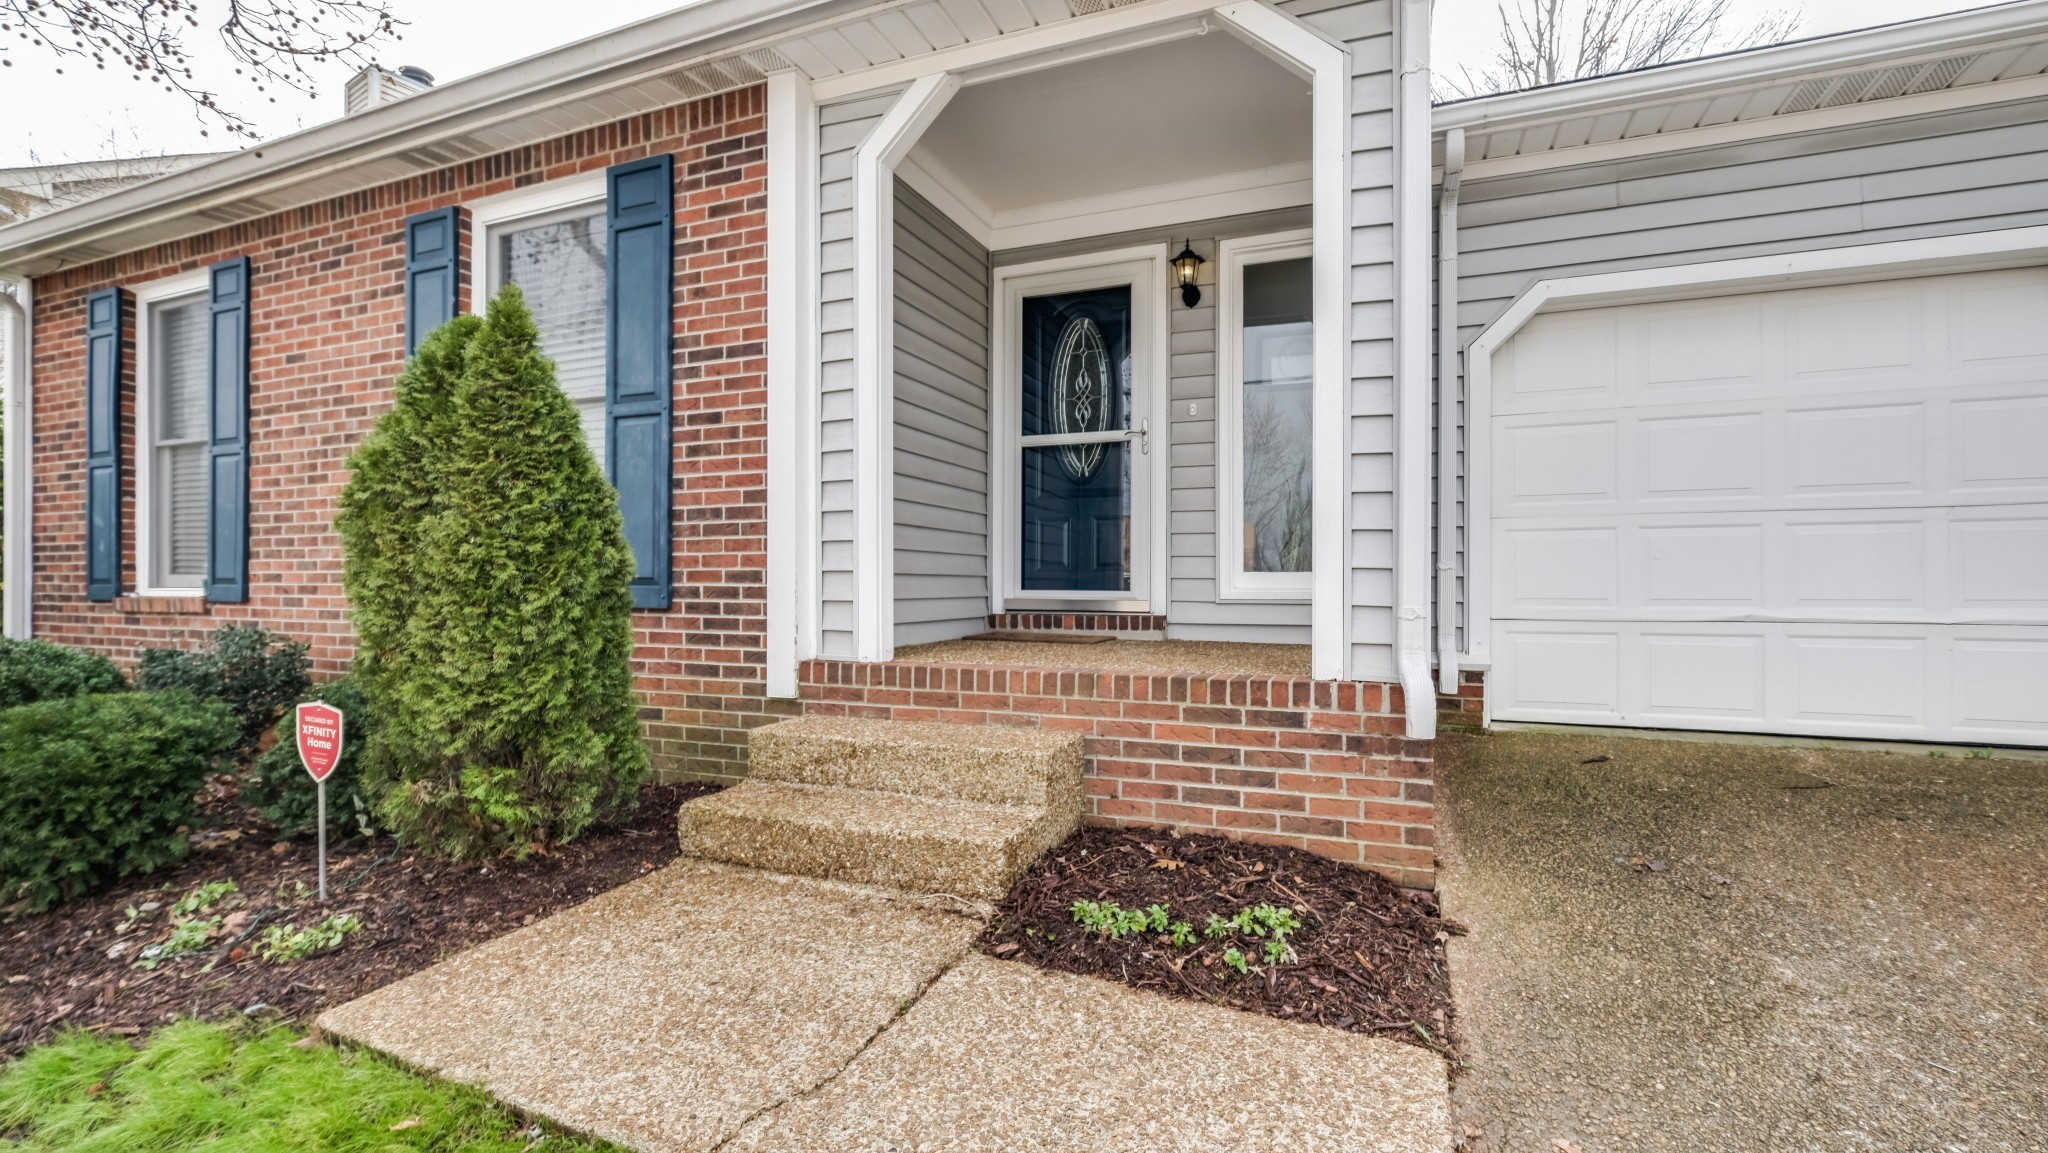 Located in the desirable neighborhood of Villages of Brentwood!  One level open floor plan with three bedrooms and two full bathrooms. Updated kitchen with SS appl. Extra large backyard with full 6ft privacy fence!